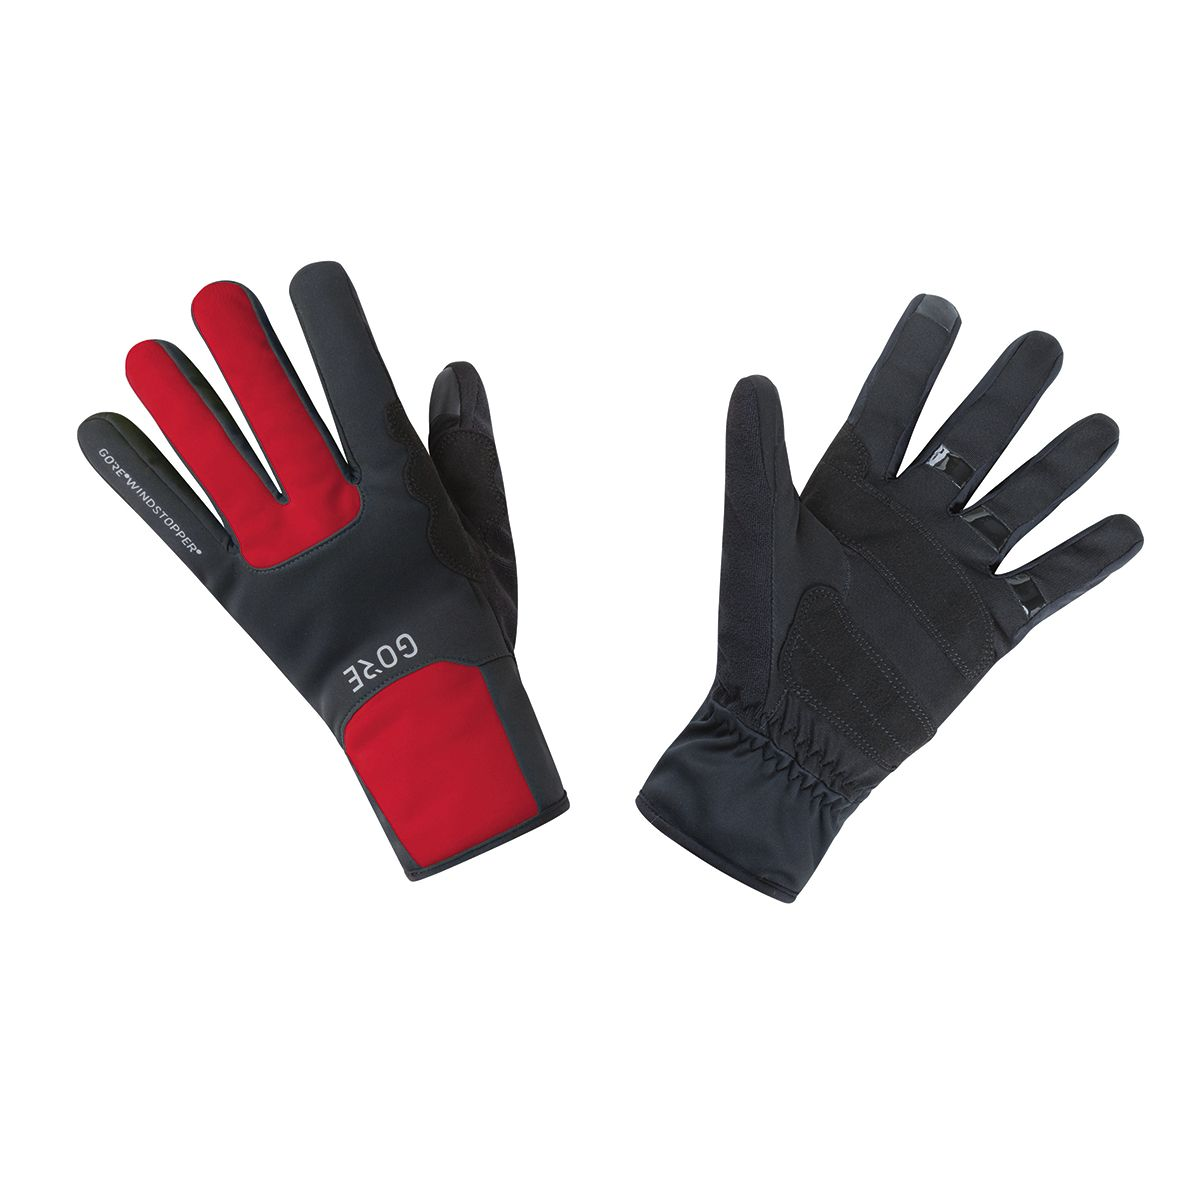 M GORE WINDSTOPPER THERMO GLOVES Fahrradhandschuhe